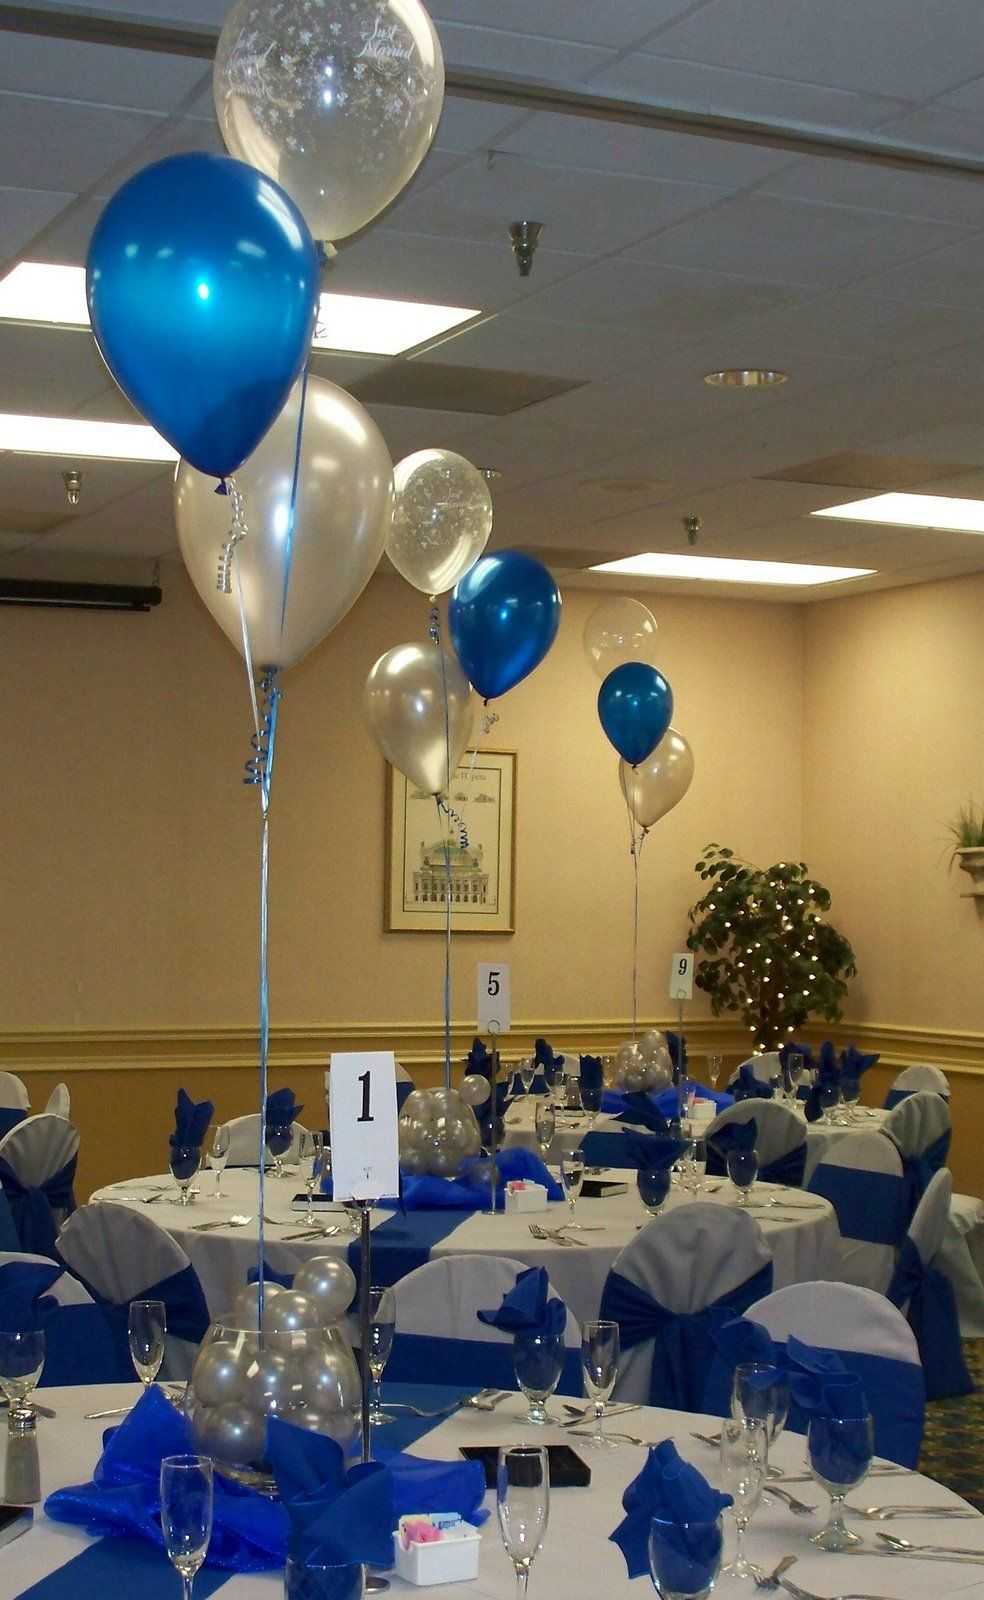 Party people celebration company custom balloon decor